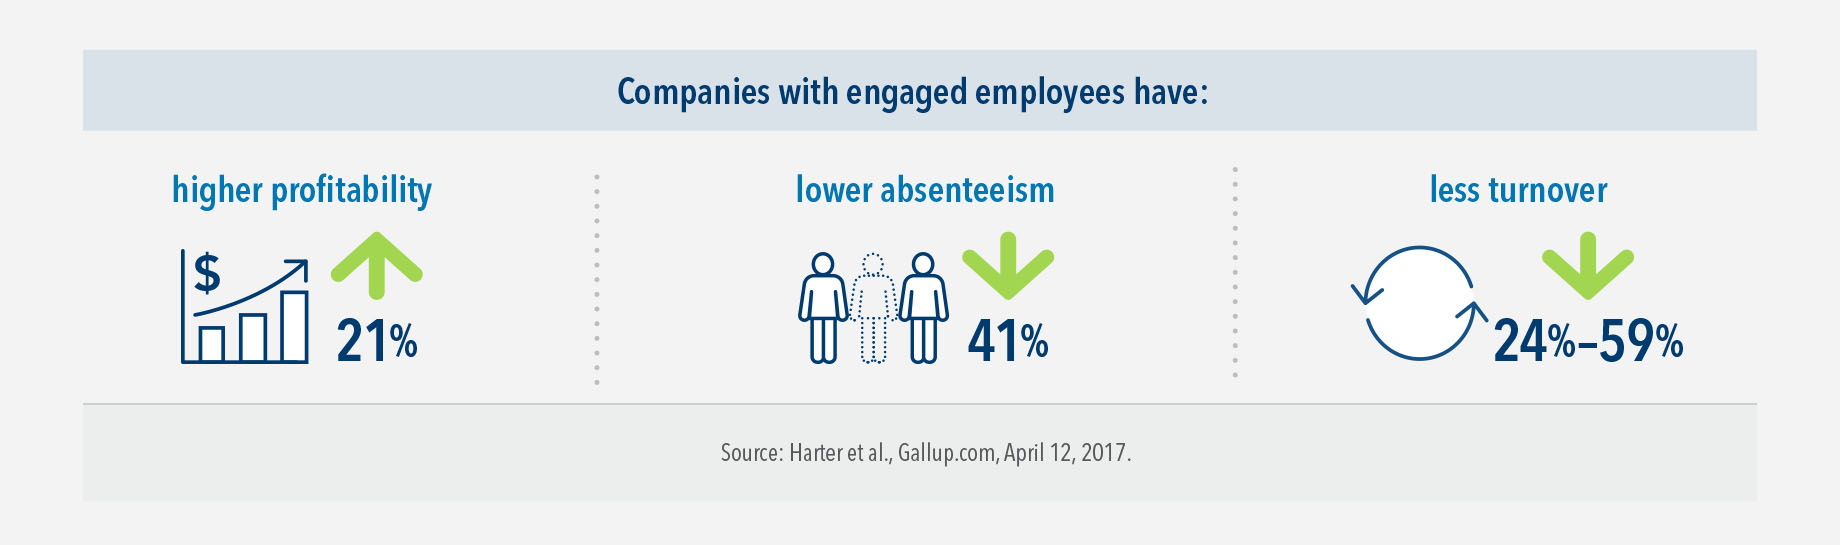 Companies with engaged employees have 21% higher profitability, 41% lower absenteeism, and 24%-59% less turnover.